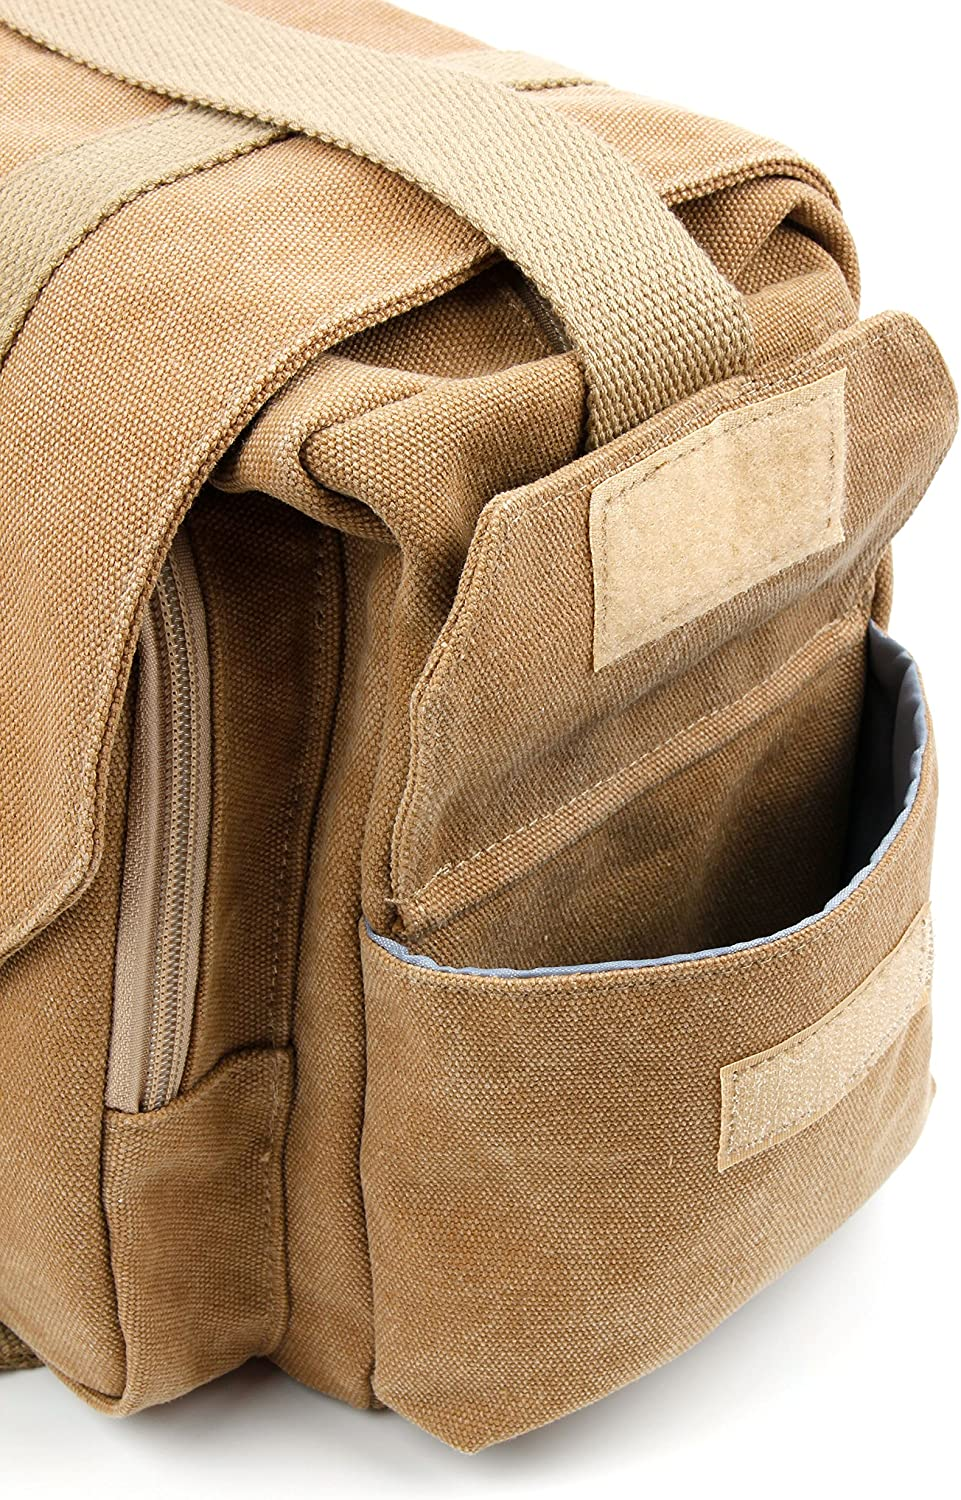 DURAGADGET Tan-Brown Large Sized Canvas Carry Bag with Multiple Pockets /& Customizable Interior Compartment Compatible with Easypix A4 Digital-Scanner